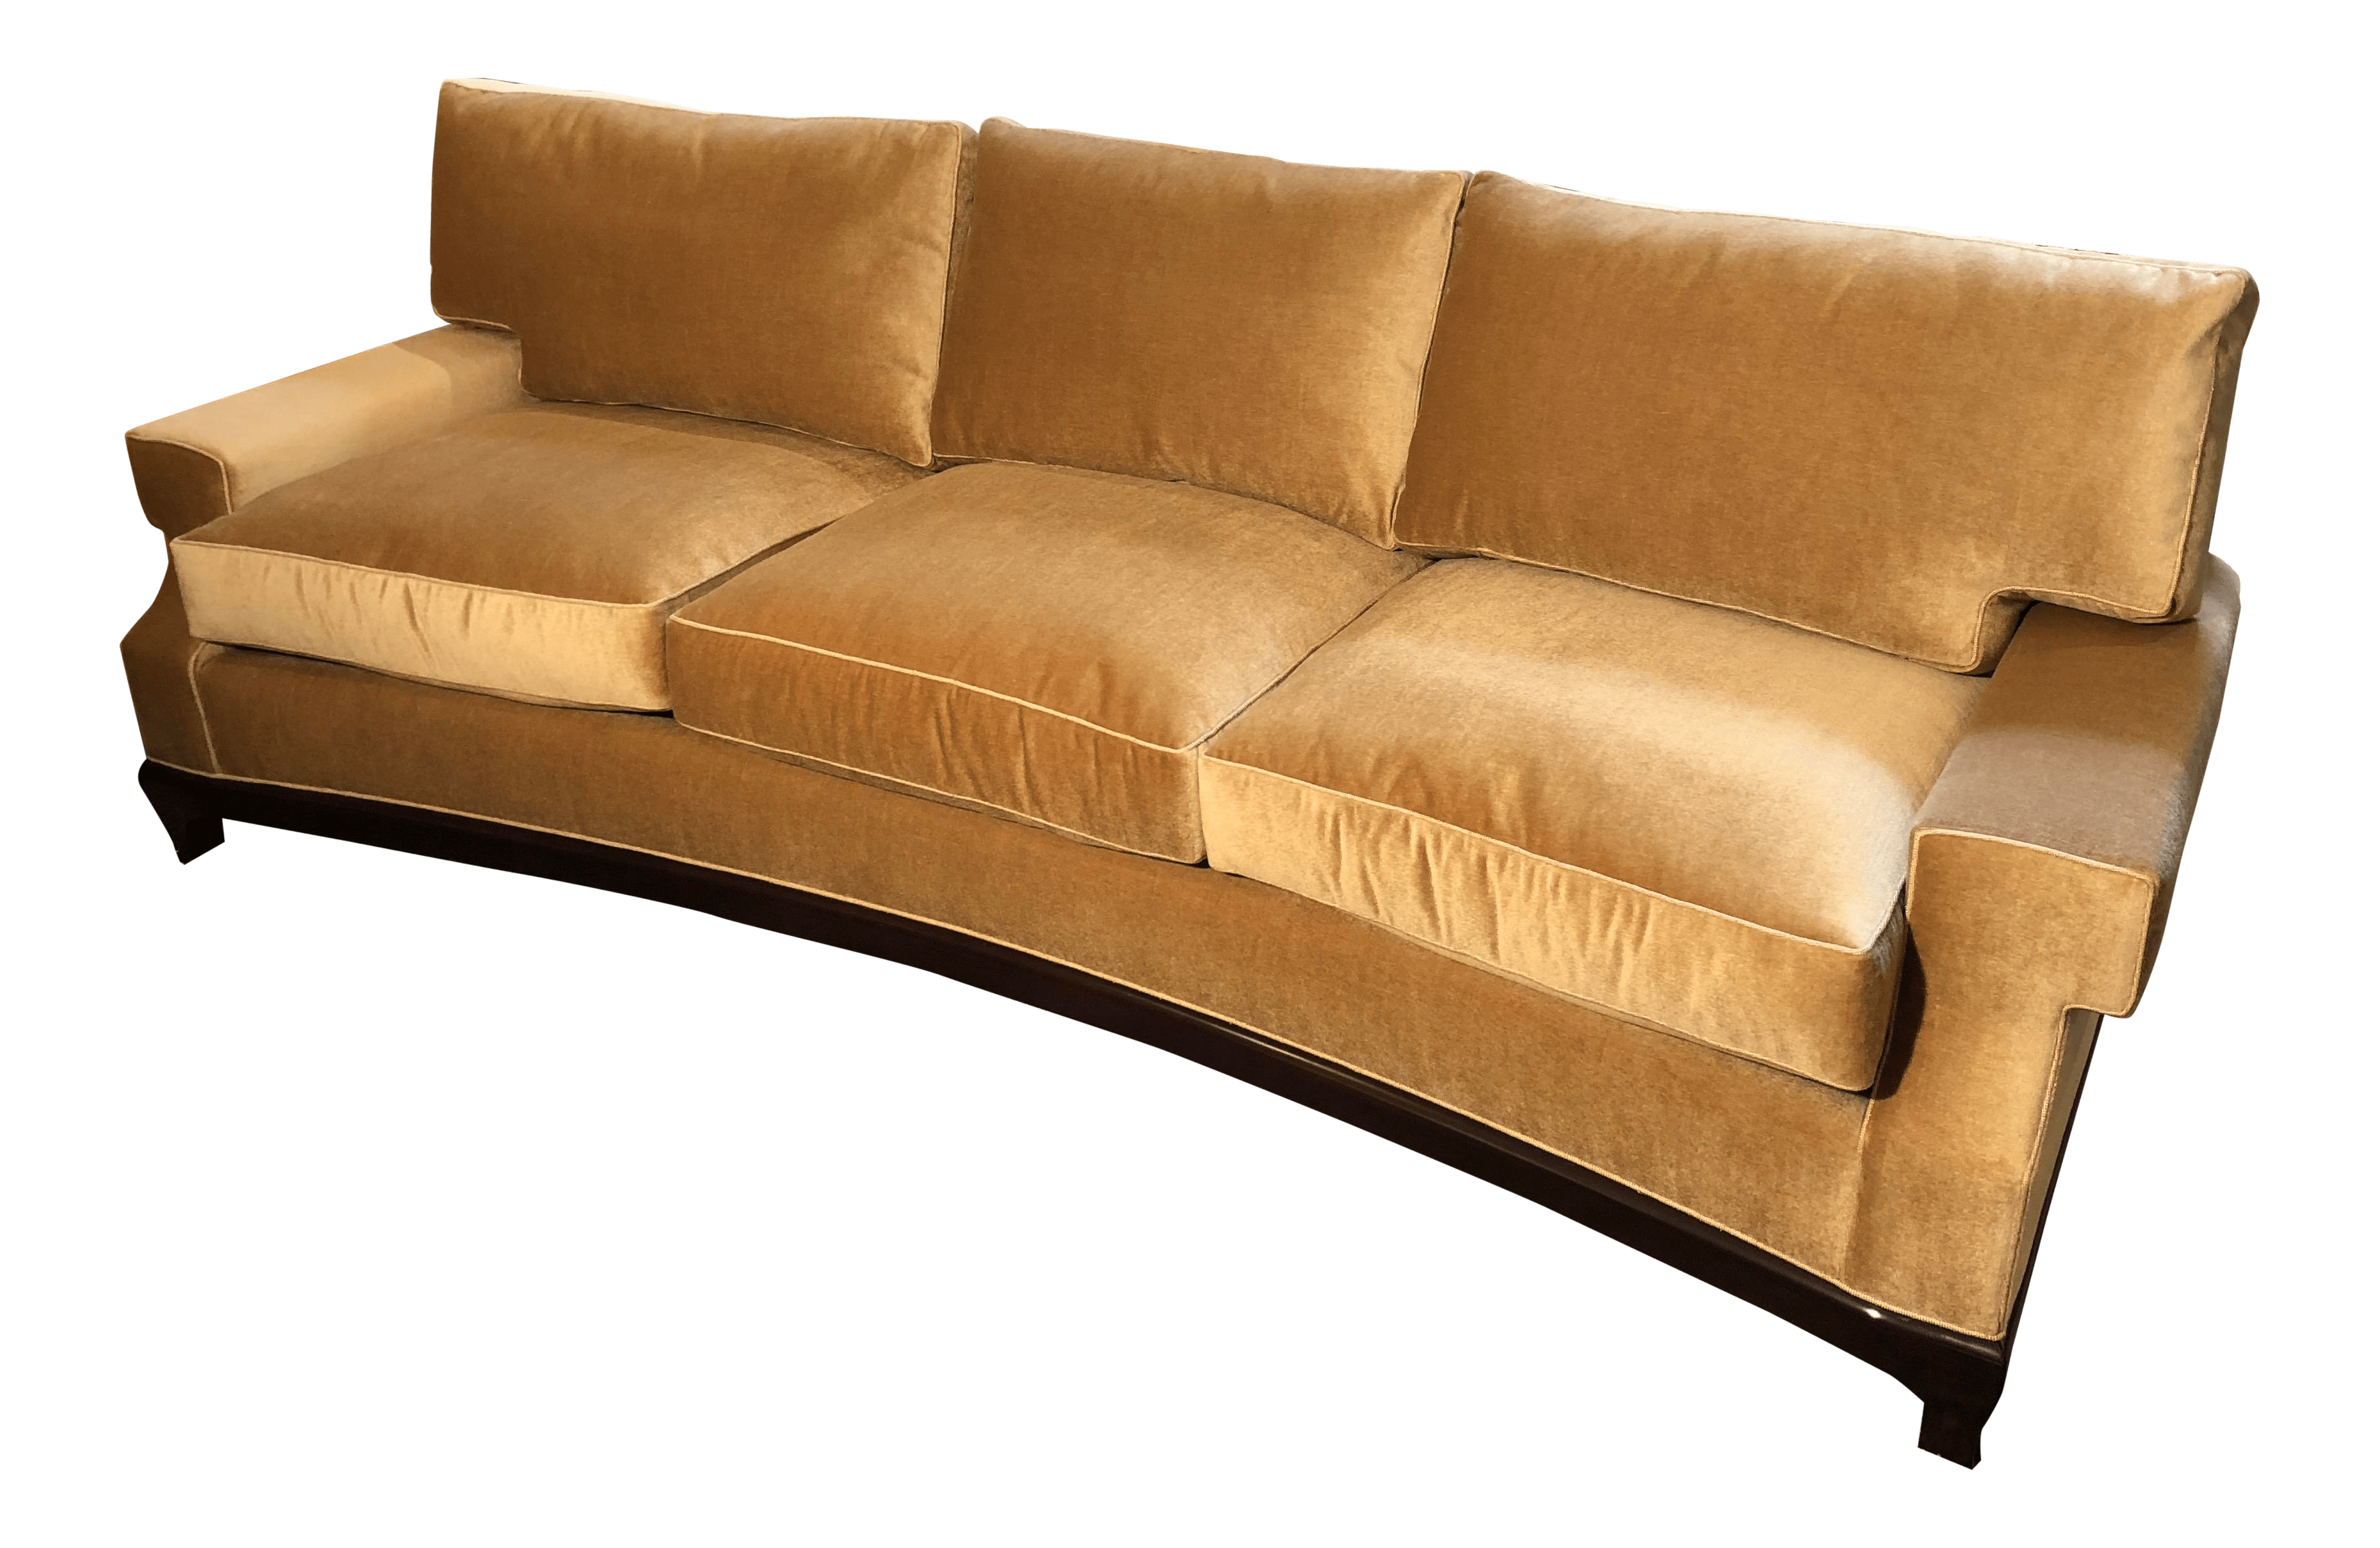 a rudin sofa 2859 costco sectional home and textiles custom no 2519 gold mohair for sale u2gzmdjs